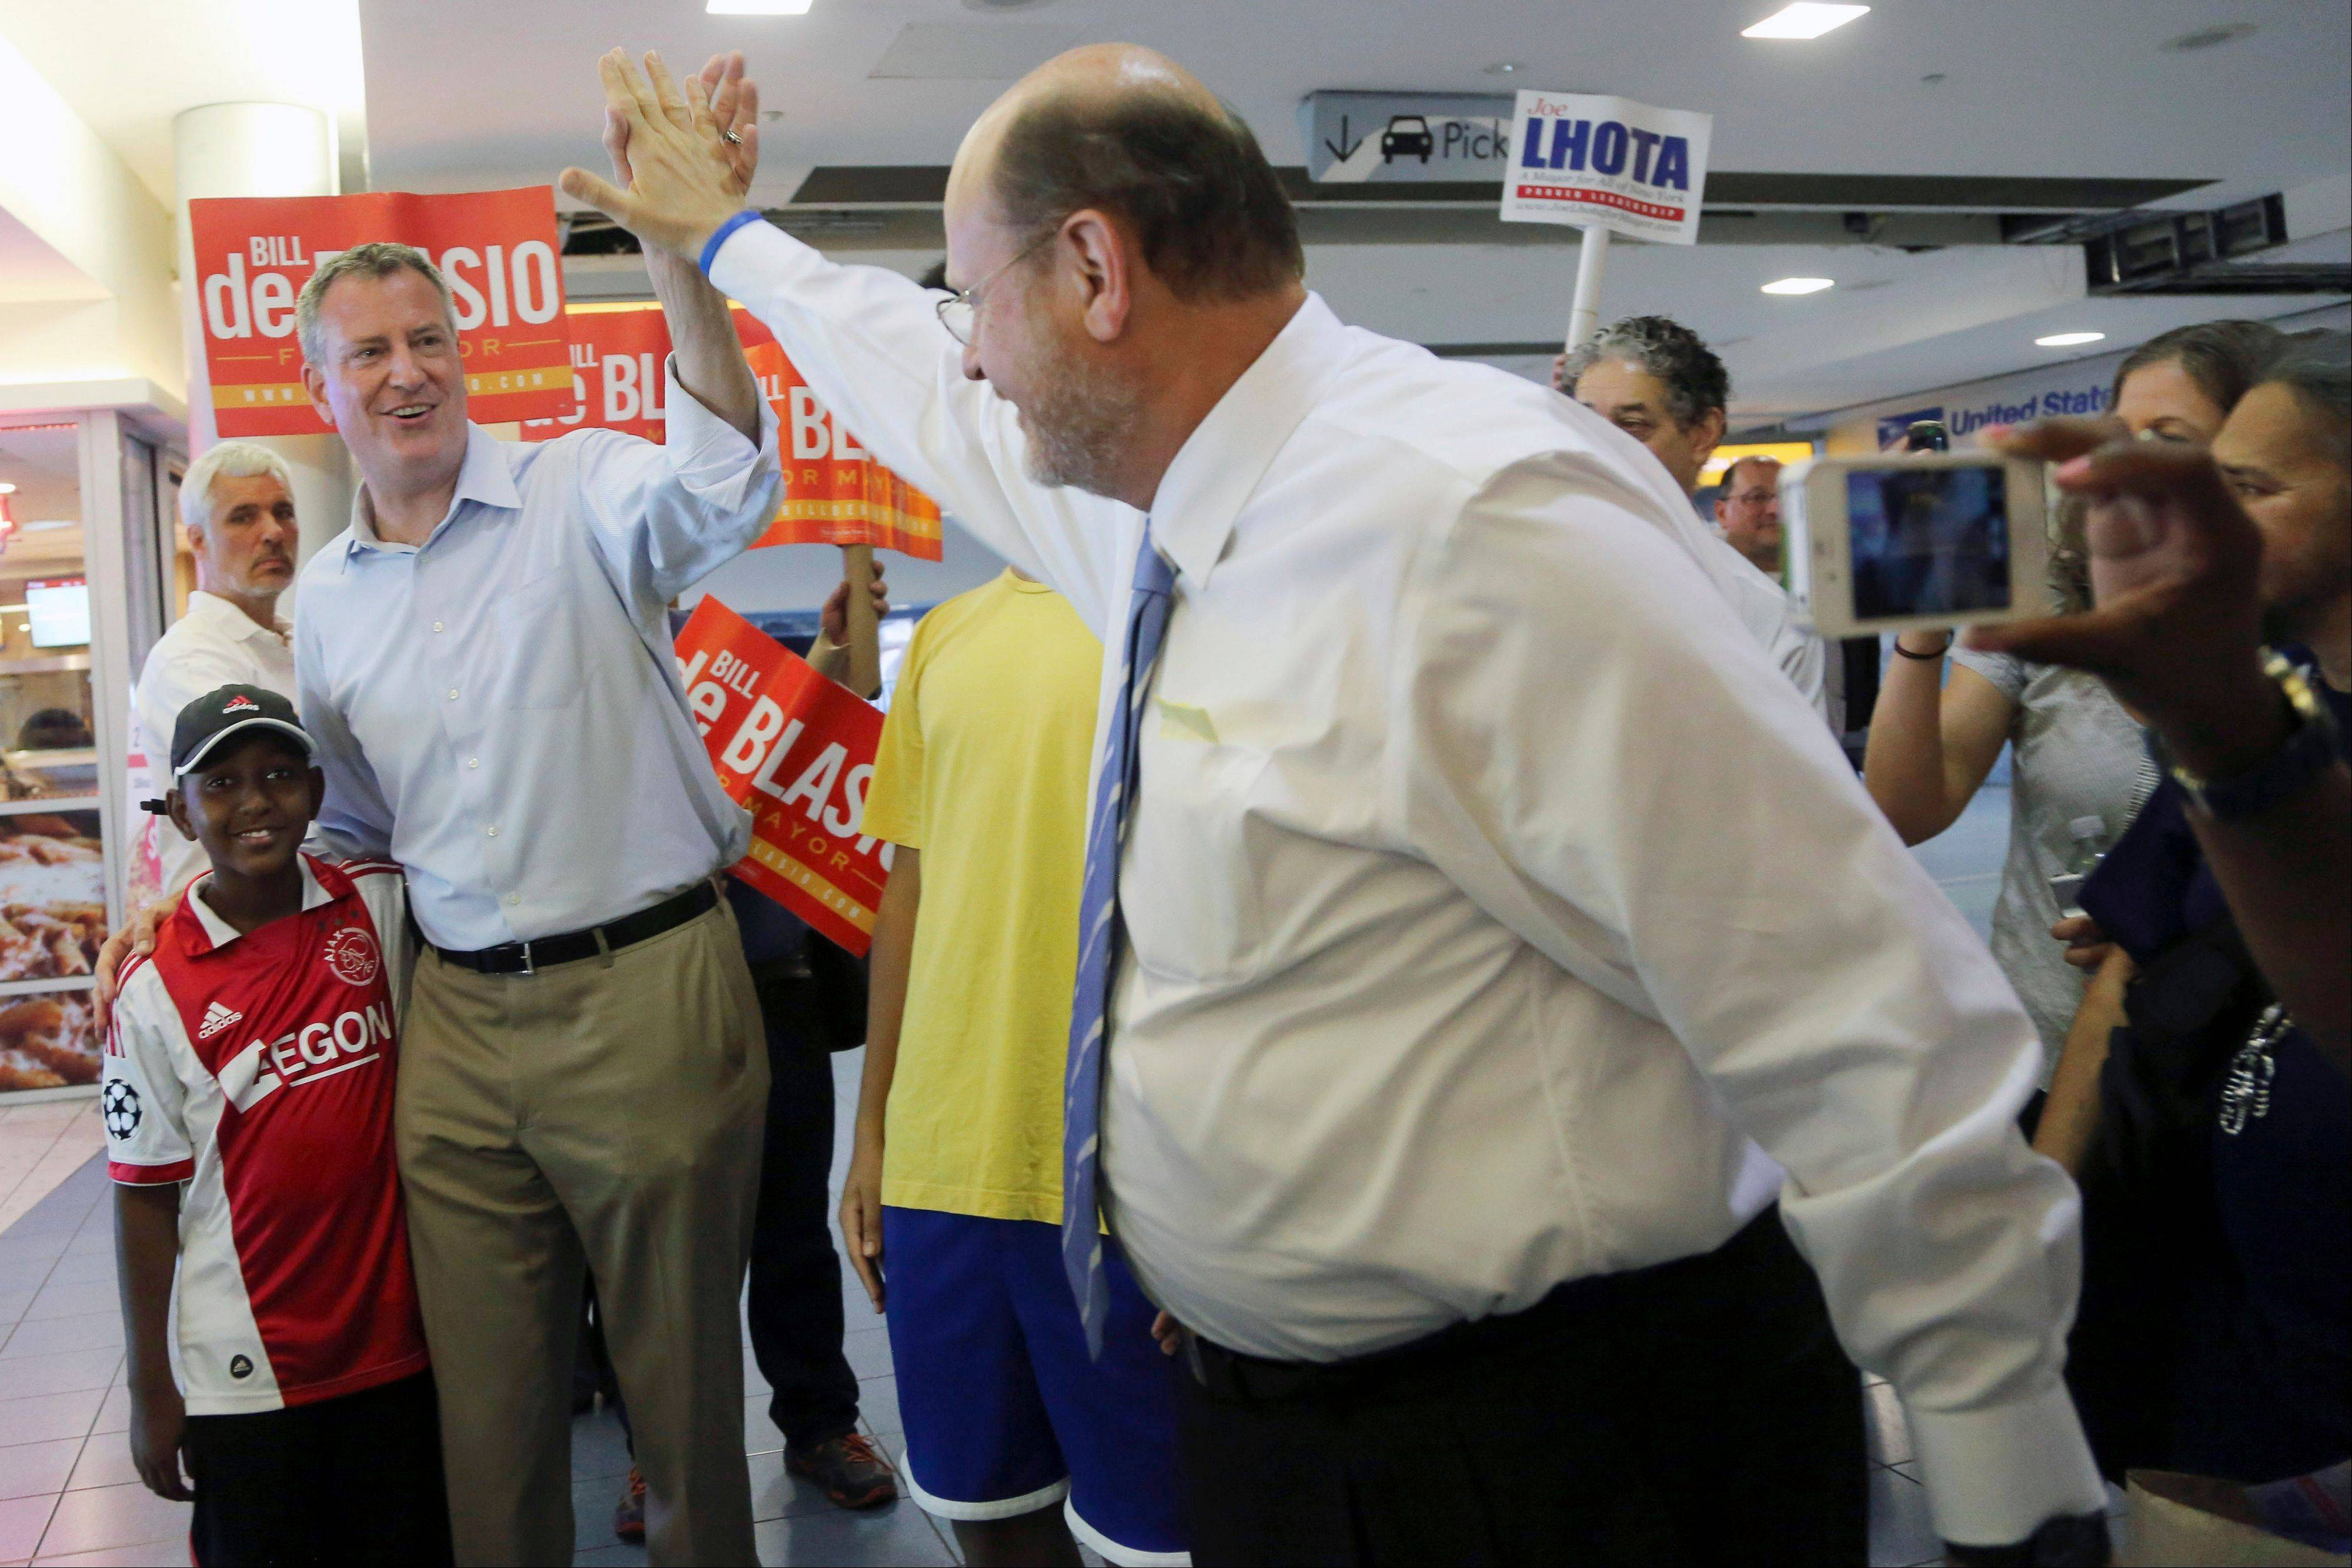 FILE- In this Sept. 4, 2013, file photo, Republican mayoral candidate Joe Lhota, right, greets Democratic mayoral hopeful Bill de Blasio at the Staten Island ferry terminal in New York. Lhota, the Republican nominee for mayor, faces long odds, down 40 points in the polls to de Blasio. One pundit says Lhota has little chance to win �unless there�s a disaster.� (AP Photo/Mary Altaffer, File)